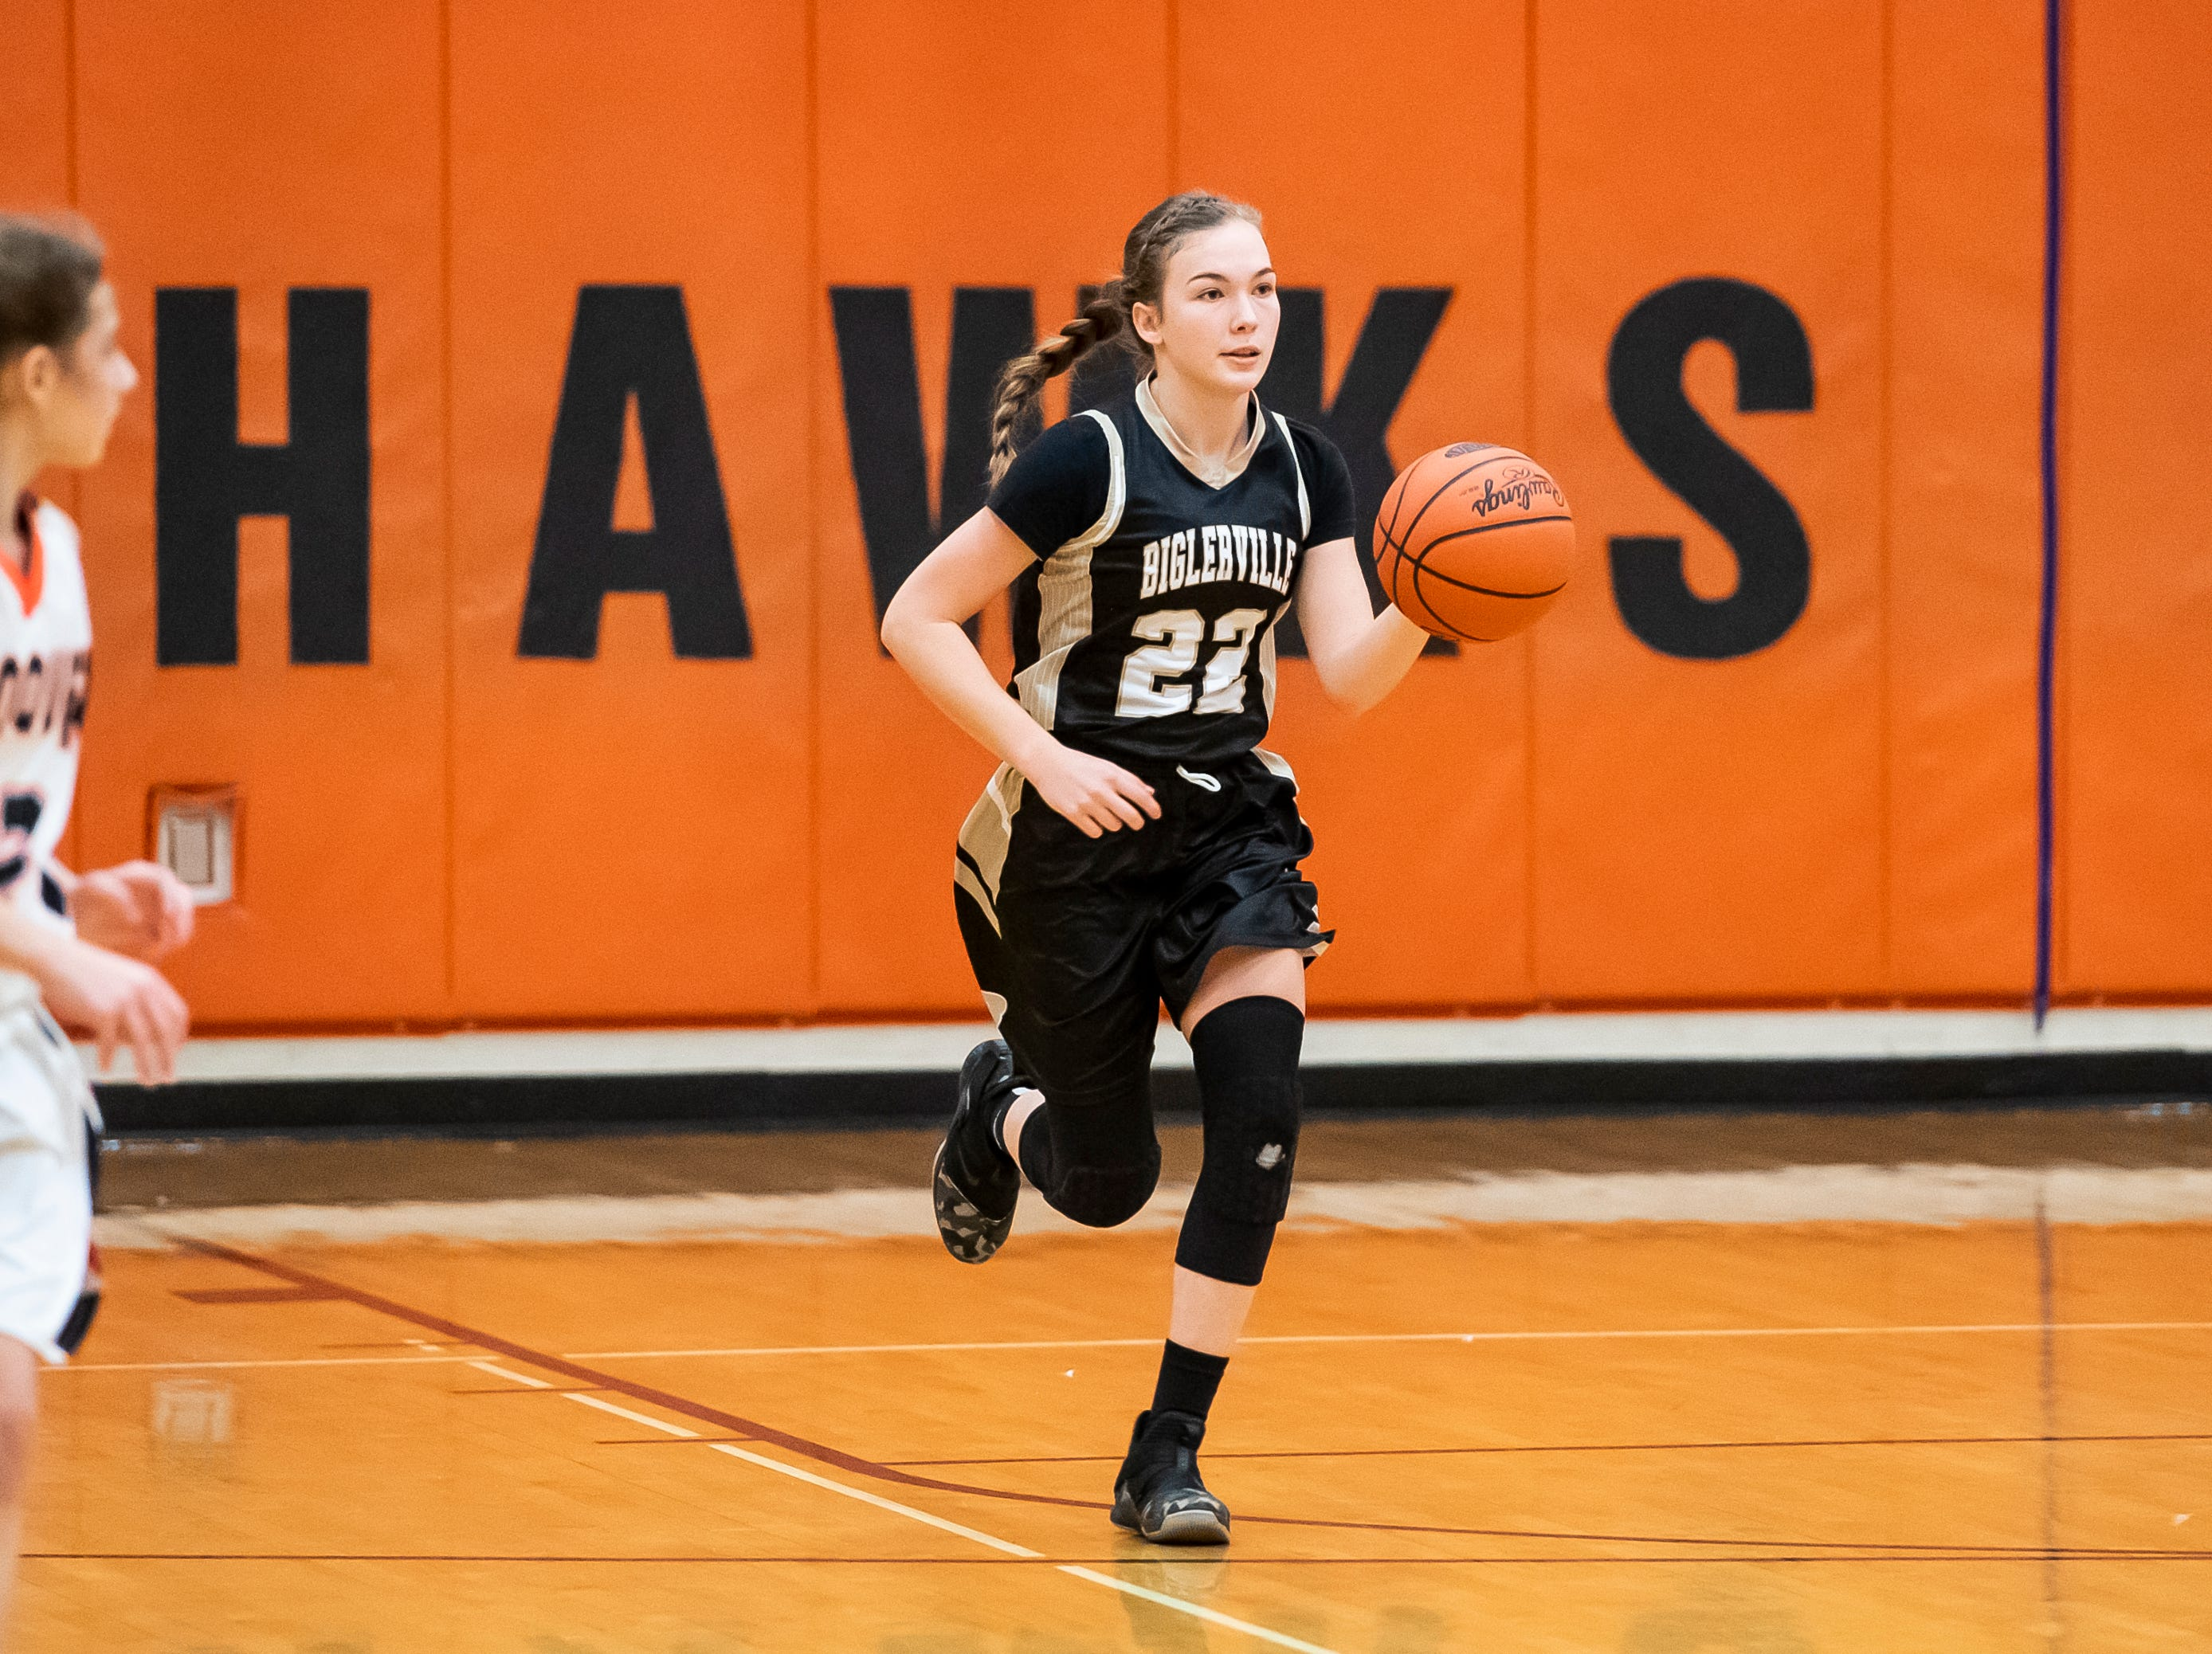 Biglerville's Myla Garber dribbles town the court during play against Hanover in the championship game of the Hanover Holiday Classic on Friday, December 28, 2018. Hanover won 30-20.